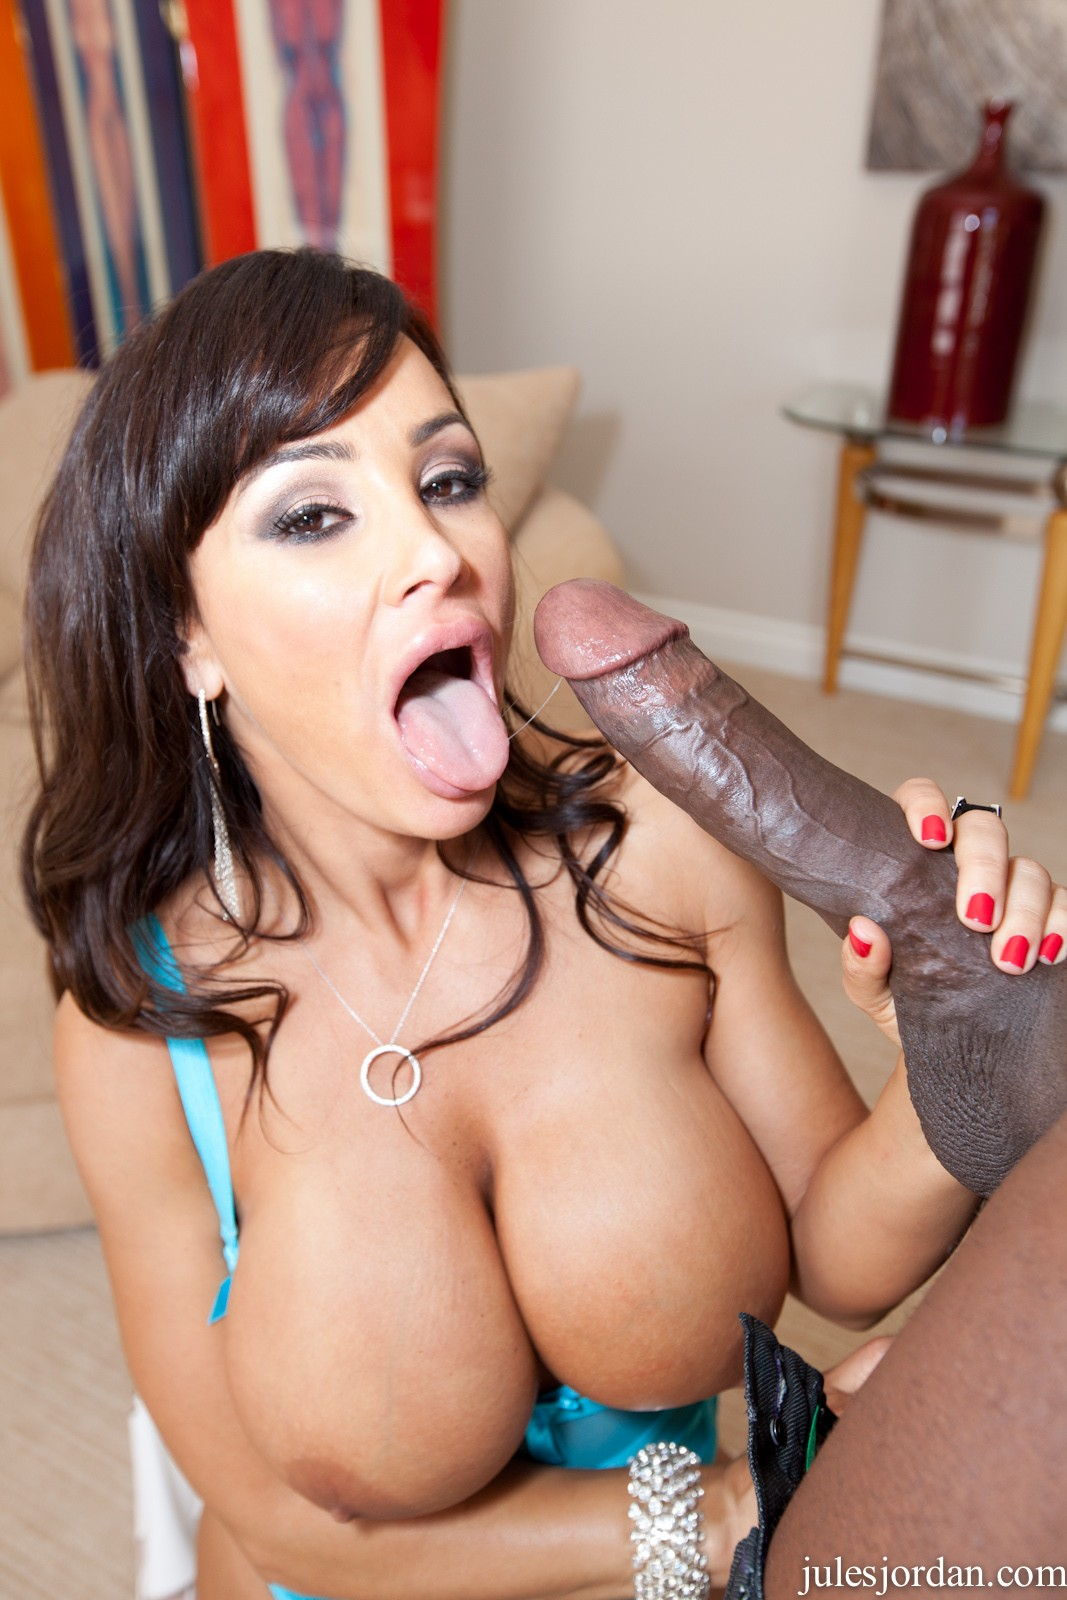 Courtney foxxx loves cocks